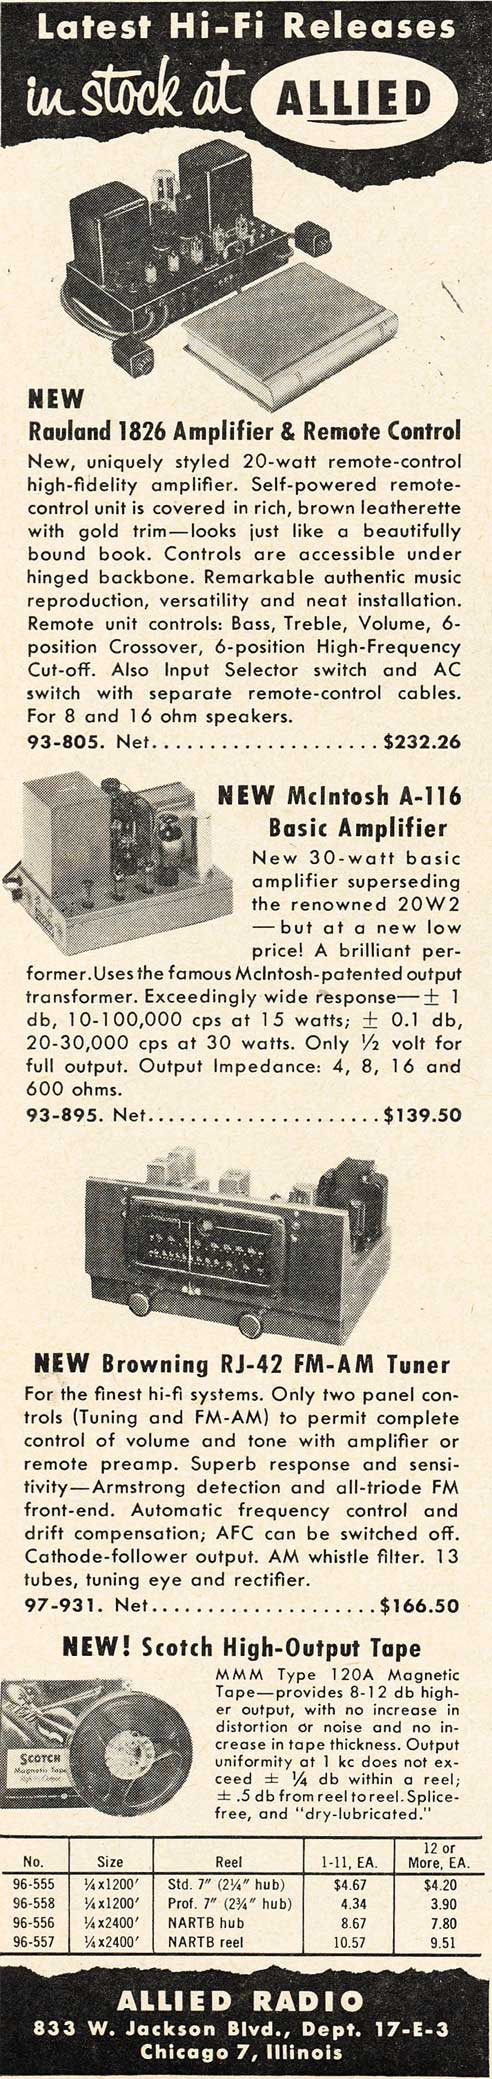 1953 ad for the Allied Radio catalog in Reel2ReelTexas.com's vintage recording collection